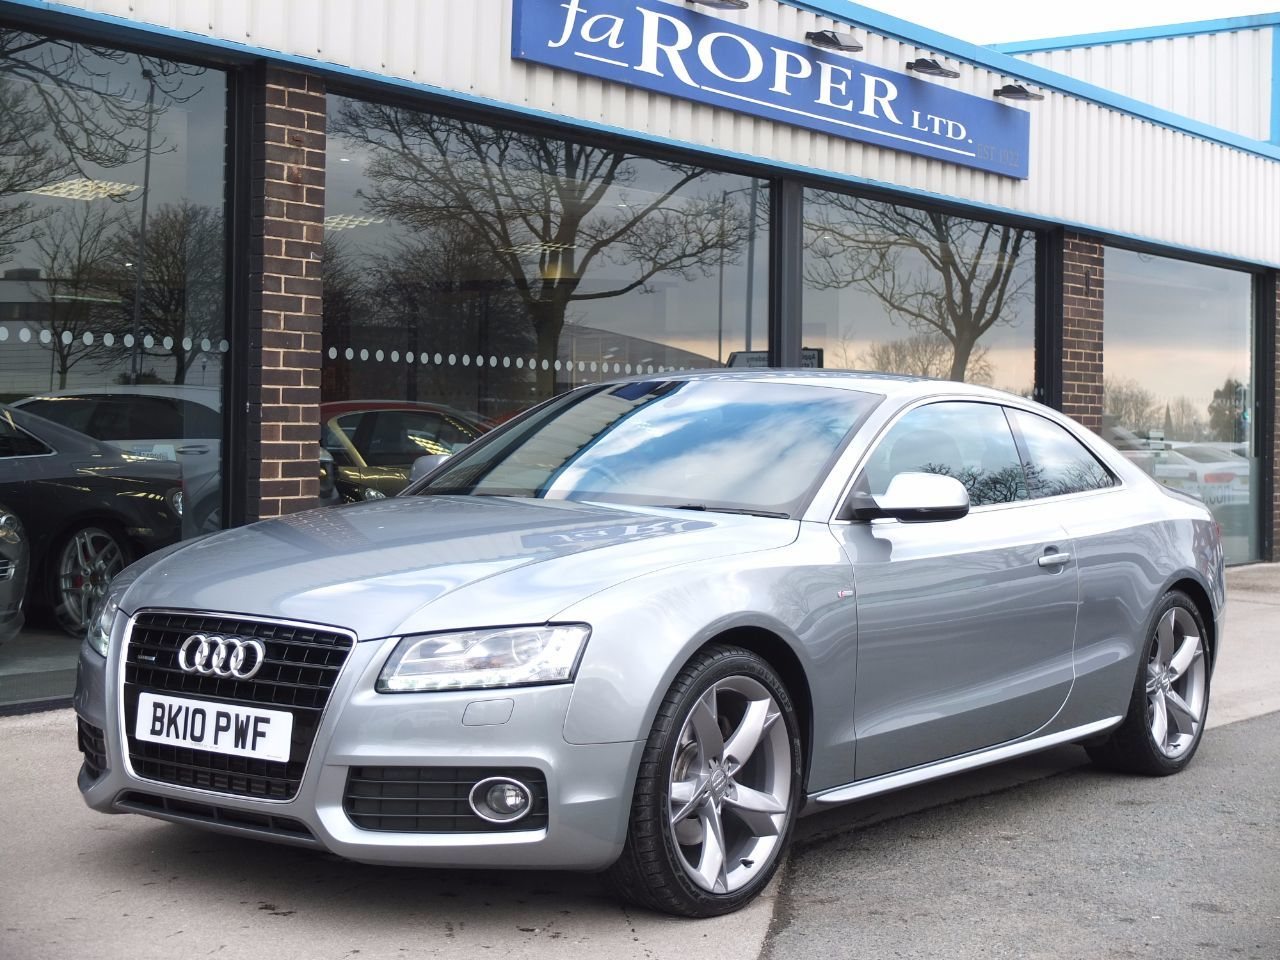 Audi A5 3.0 TDI quattro S Line Special Edition Coupe ++Spec Coupe Diesel Quartz Grey MetallicAudi A5 3.0 TDI quattro S Line Special Edition Coupe ++Spec Coupe Diesel Quartz Grey Metallic at fa Roper Ltd Bradford